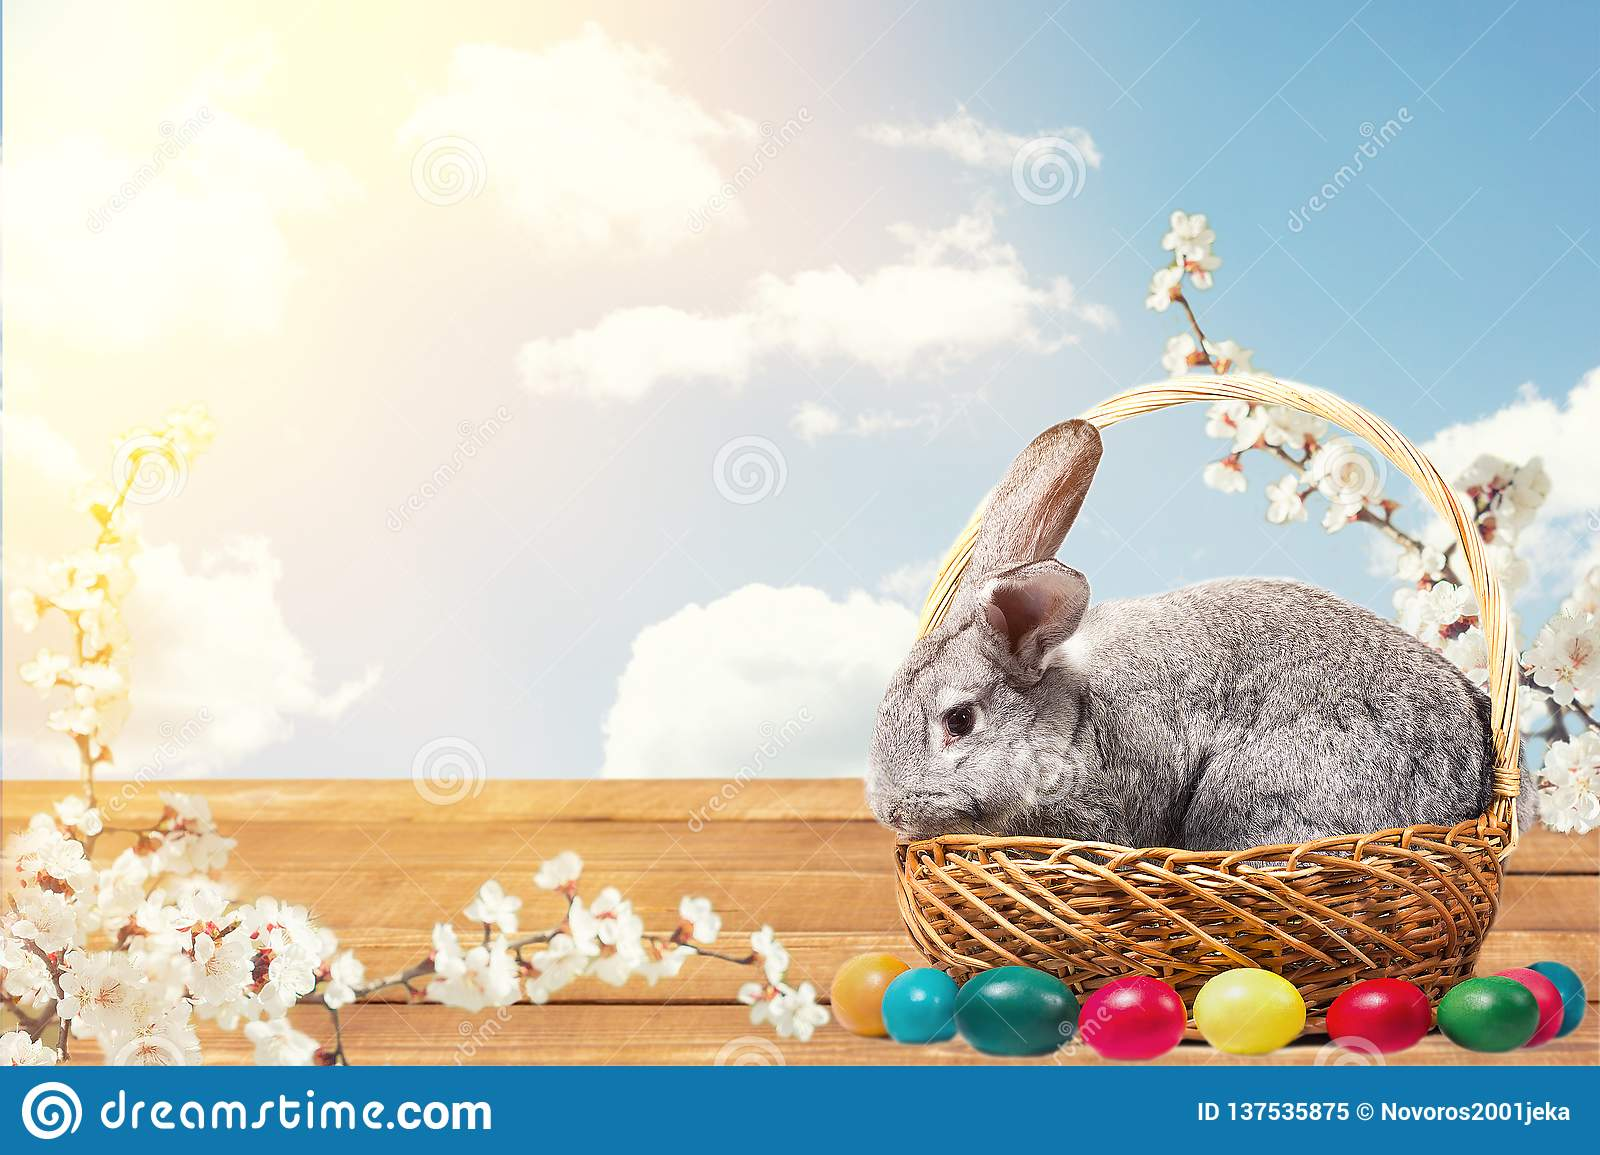 Easter bunny with eggs in a basket